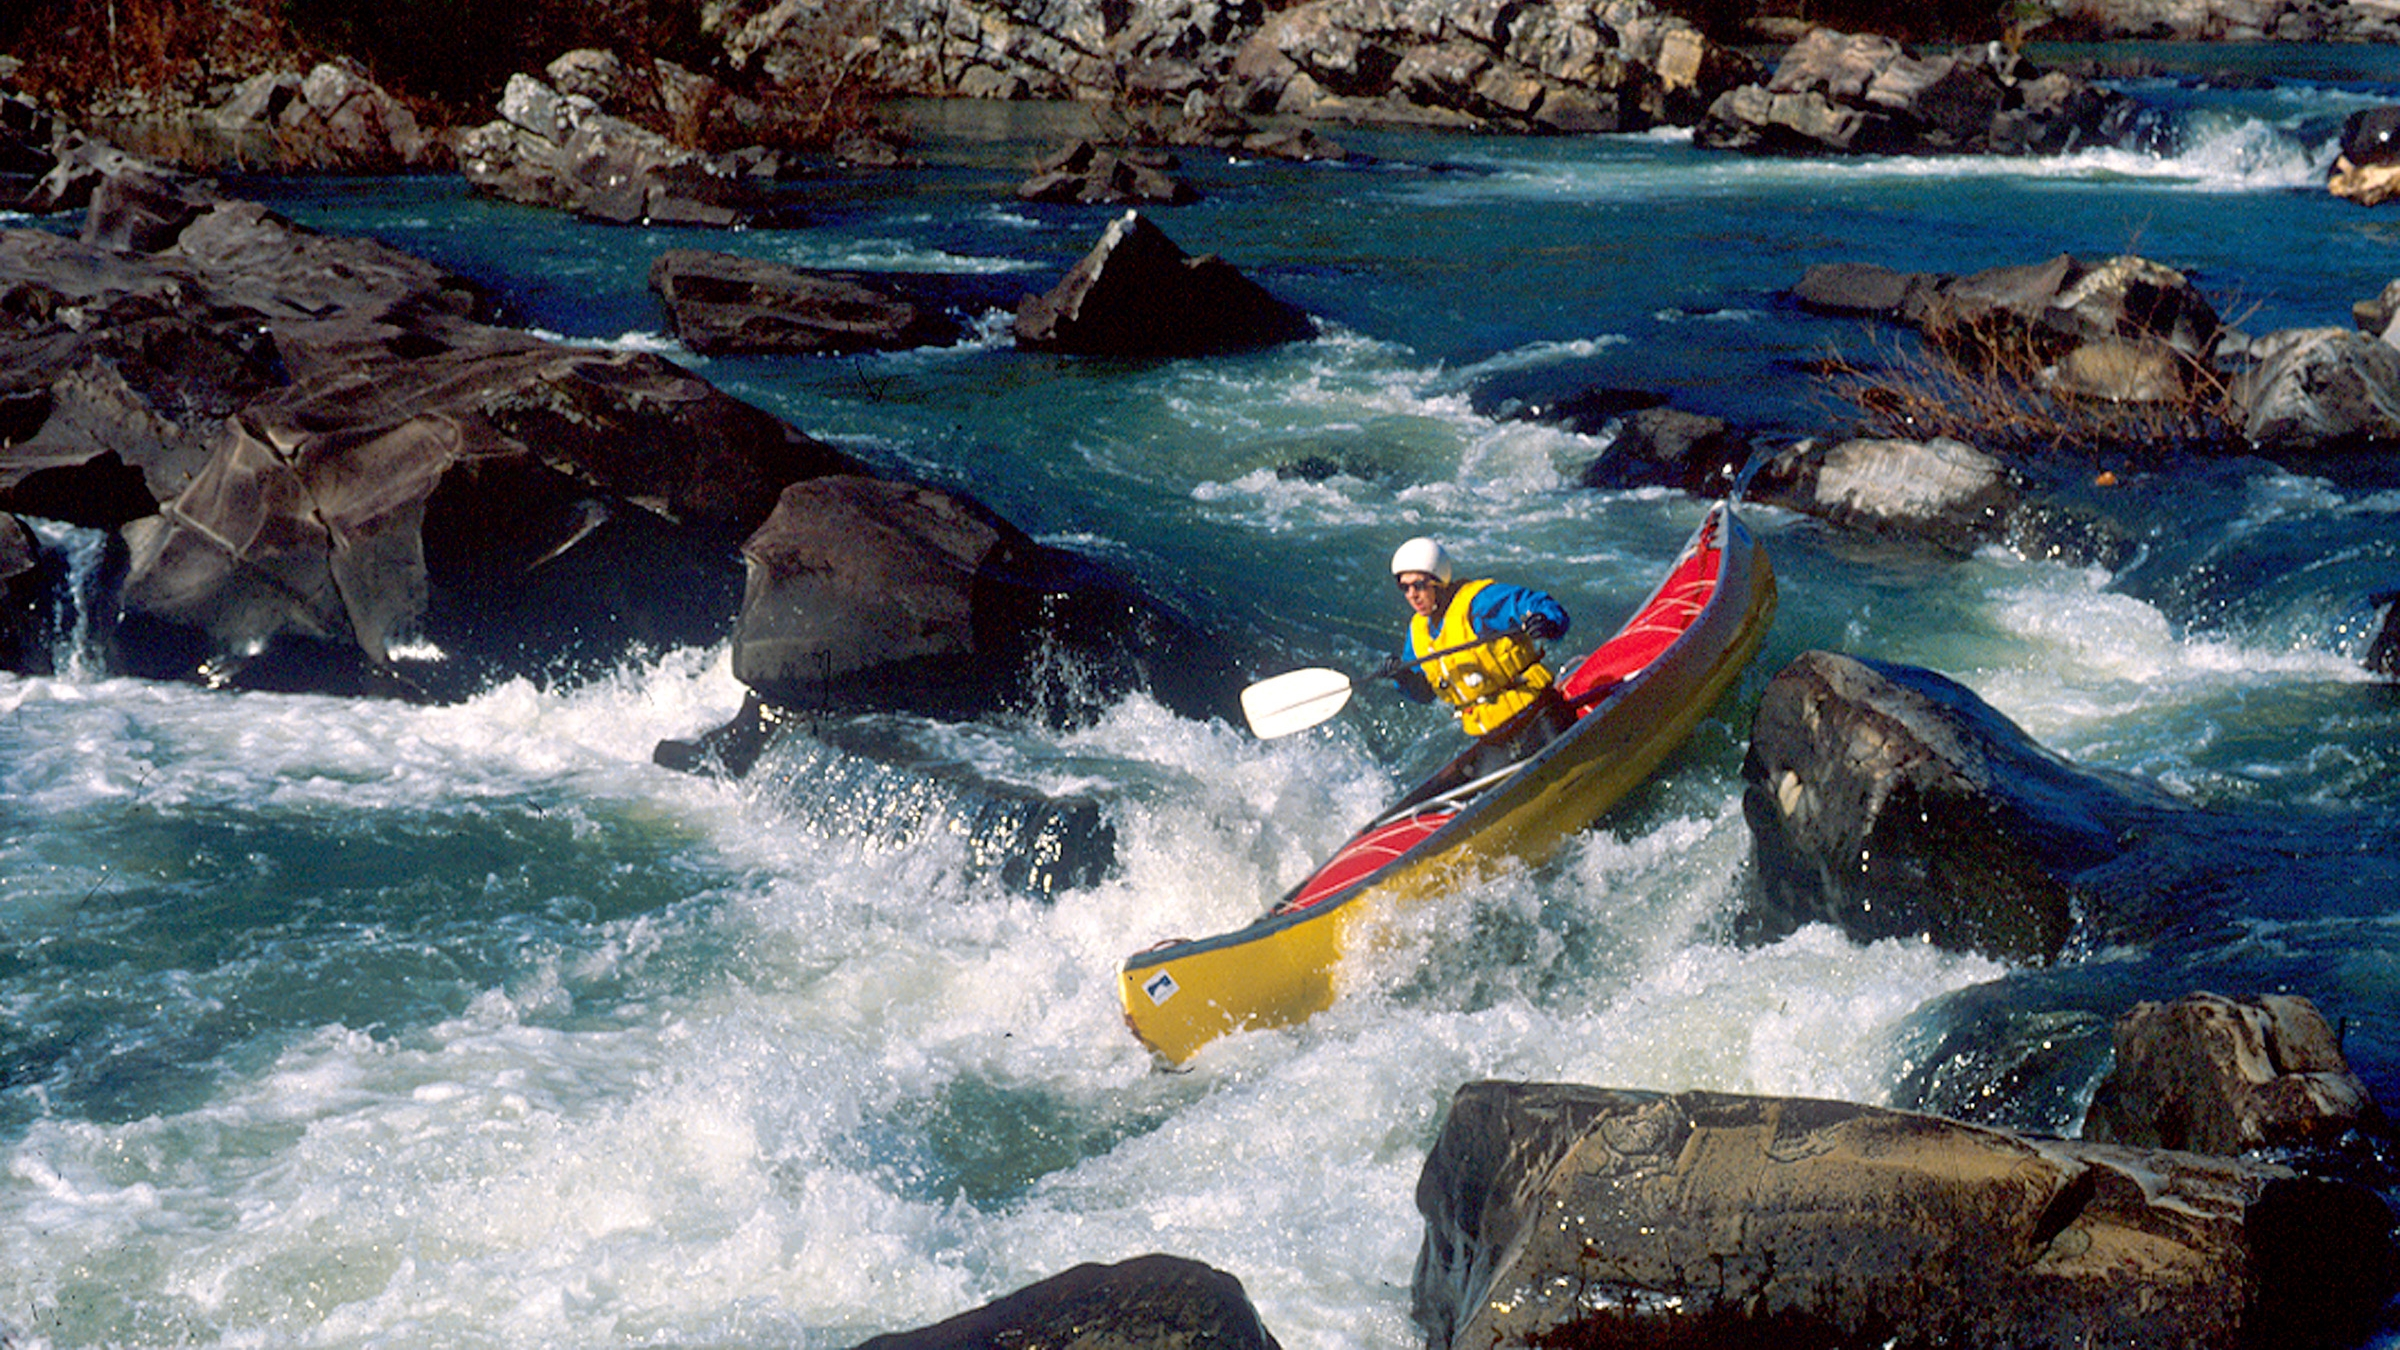 The Cossatot River has some of the state's most challenging rapids.